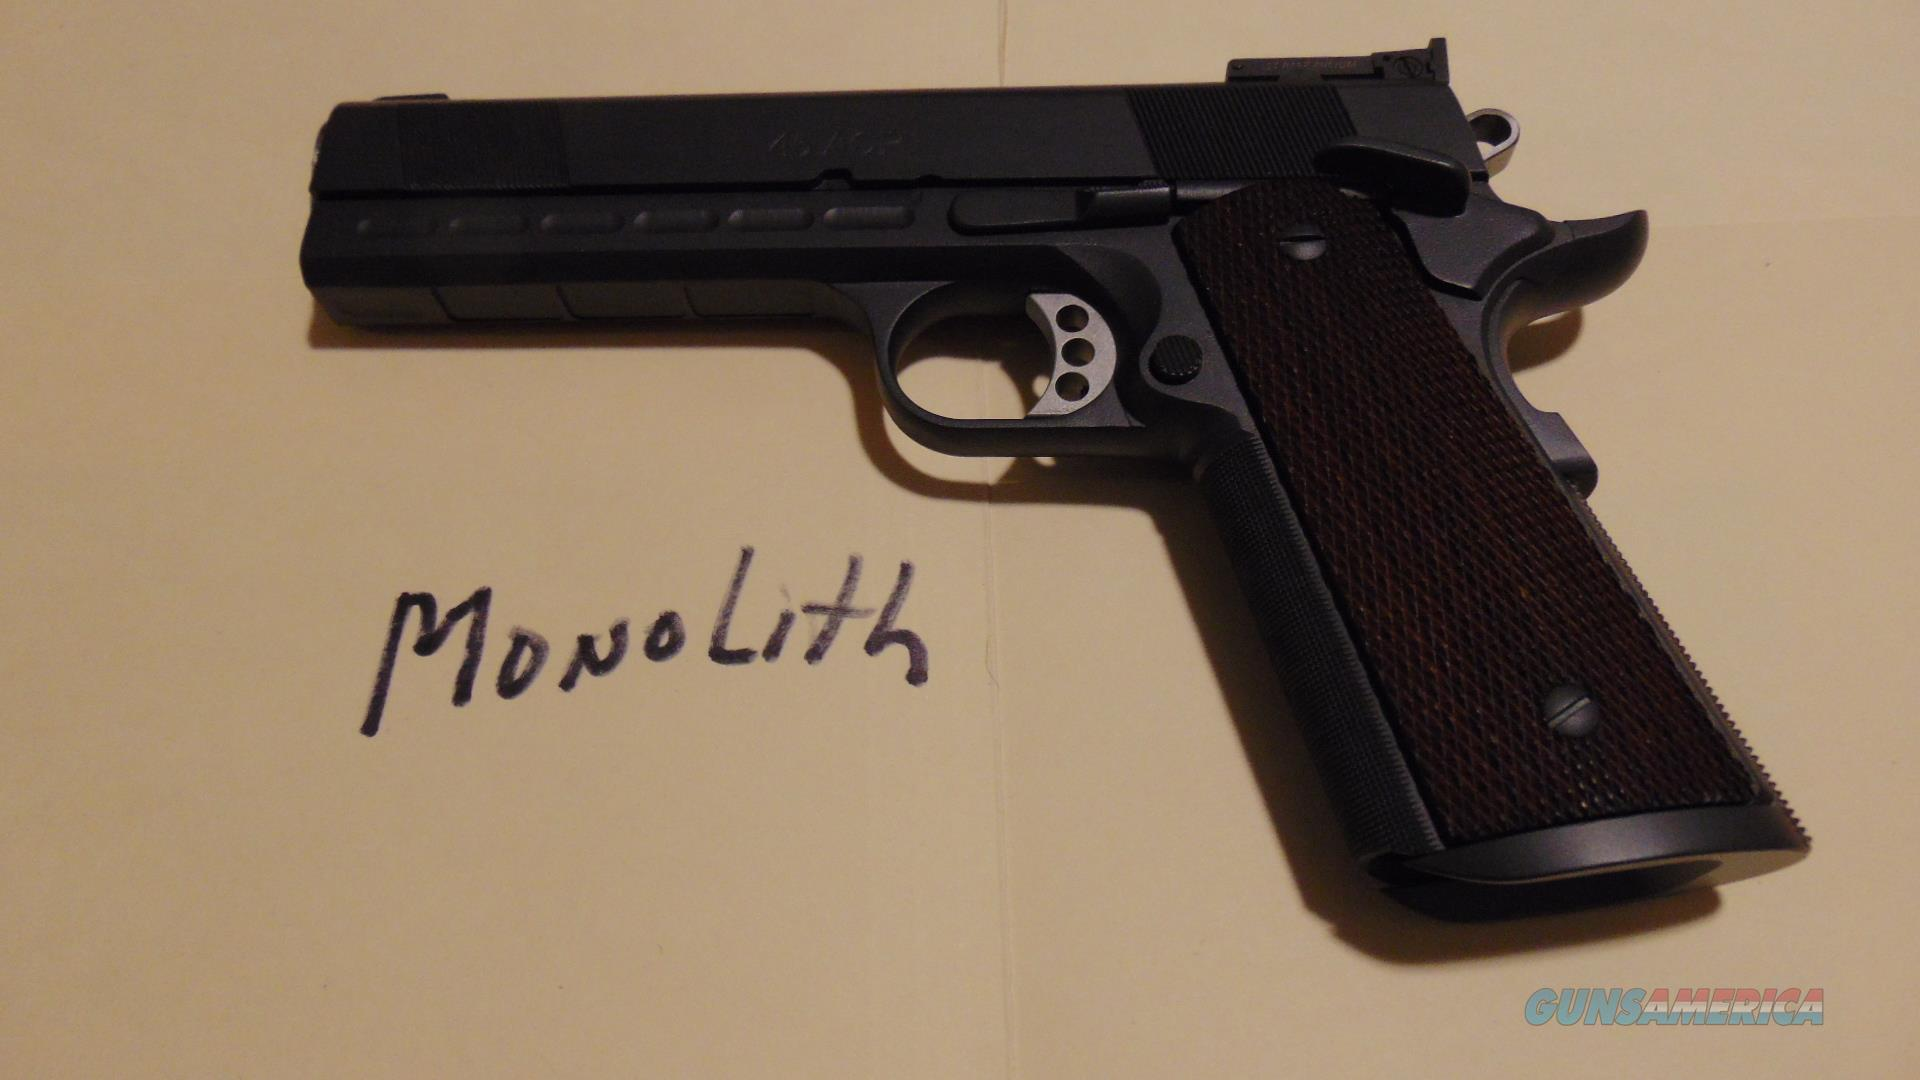 les baer monolith 45,,,,,,,,,,,,,,lowest cost/best condition here  Guns > Pistols > Les Baer Pistols